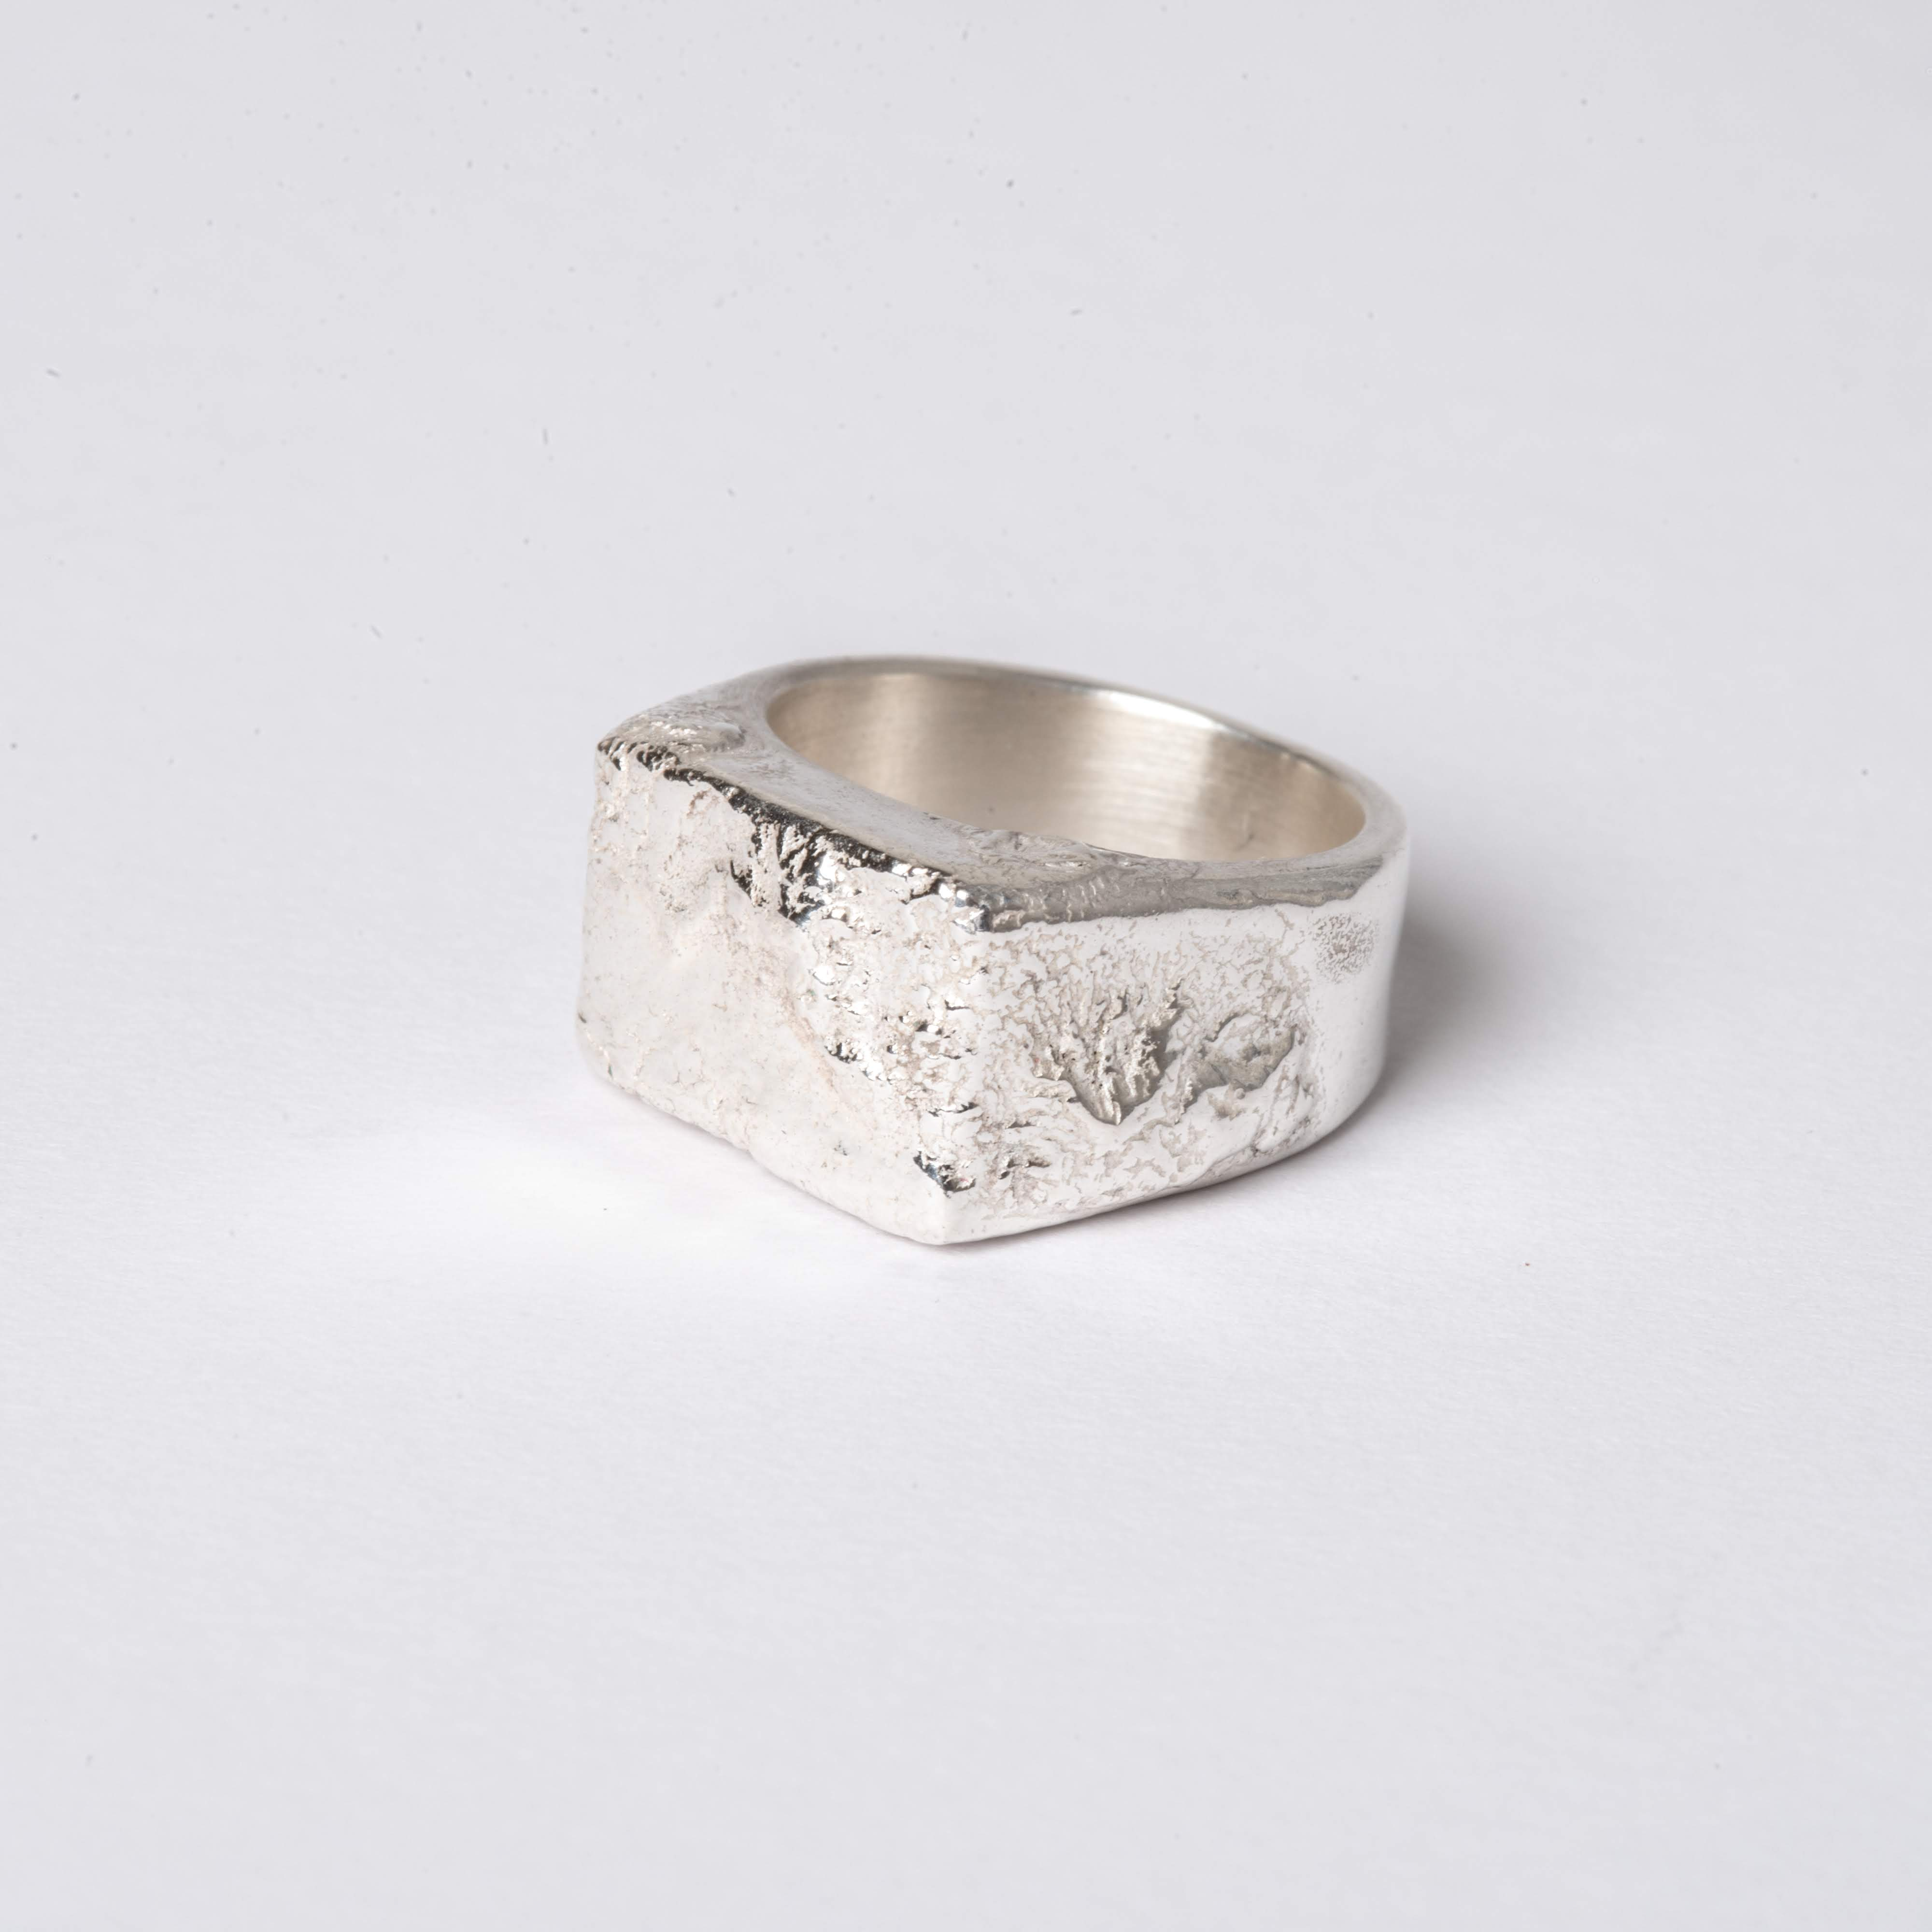 Recycled silver large signet